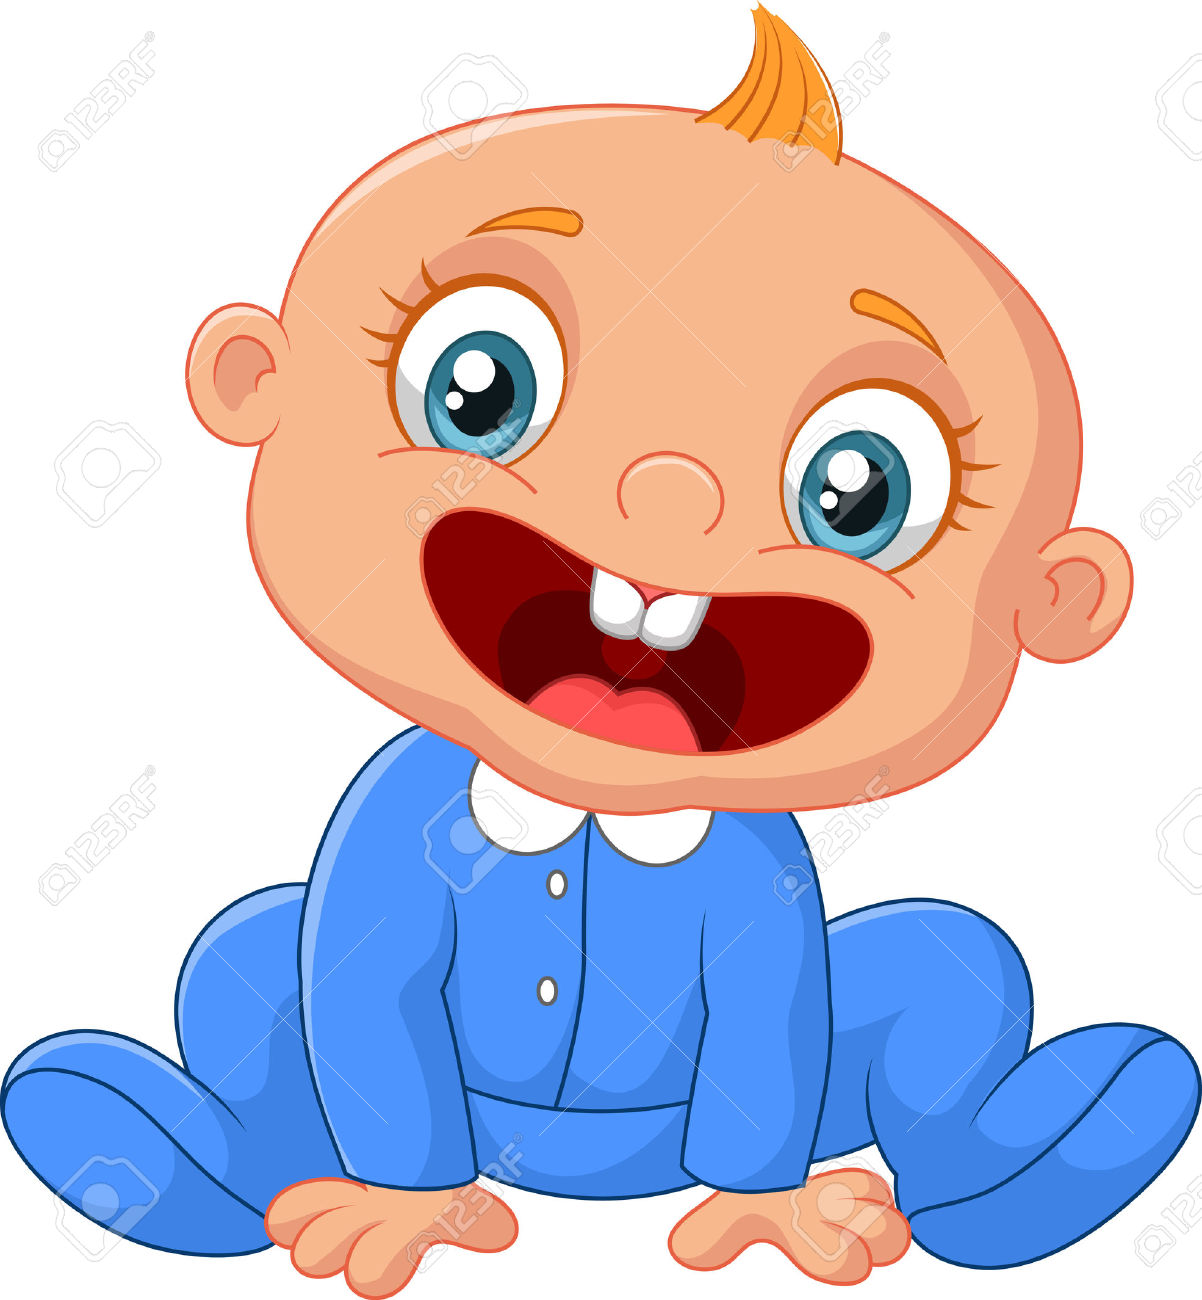 Laughing Baby Clipart Free Download On Clipartmag